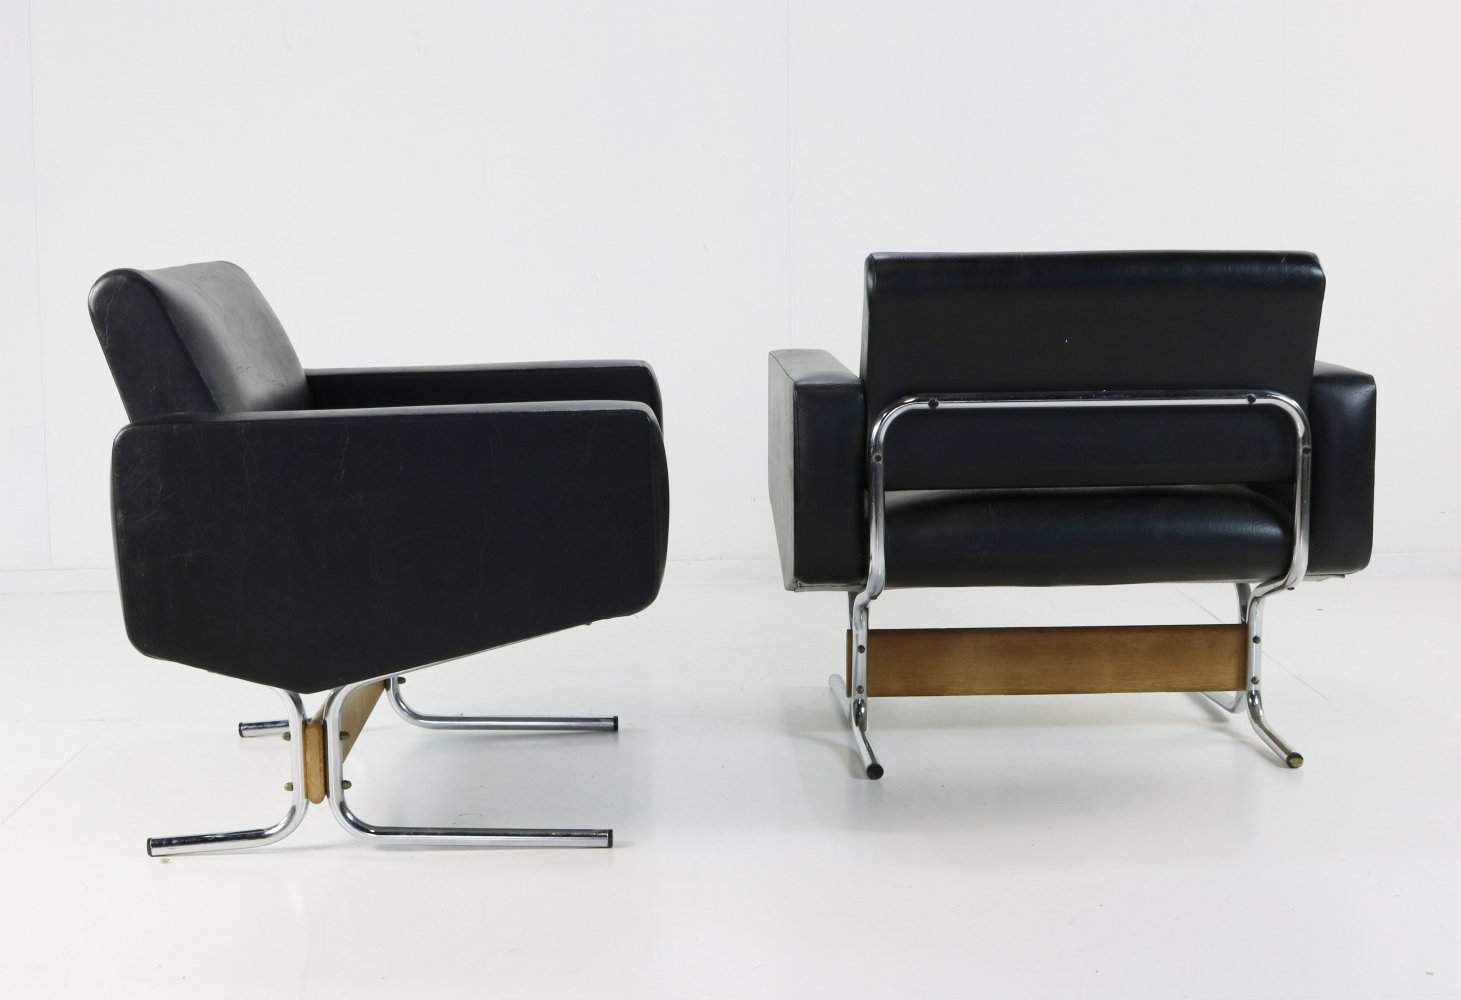 2 x Caracas lounge chair by Pierre Guariche for Meurop, 1960s